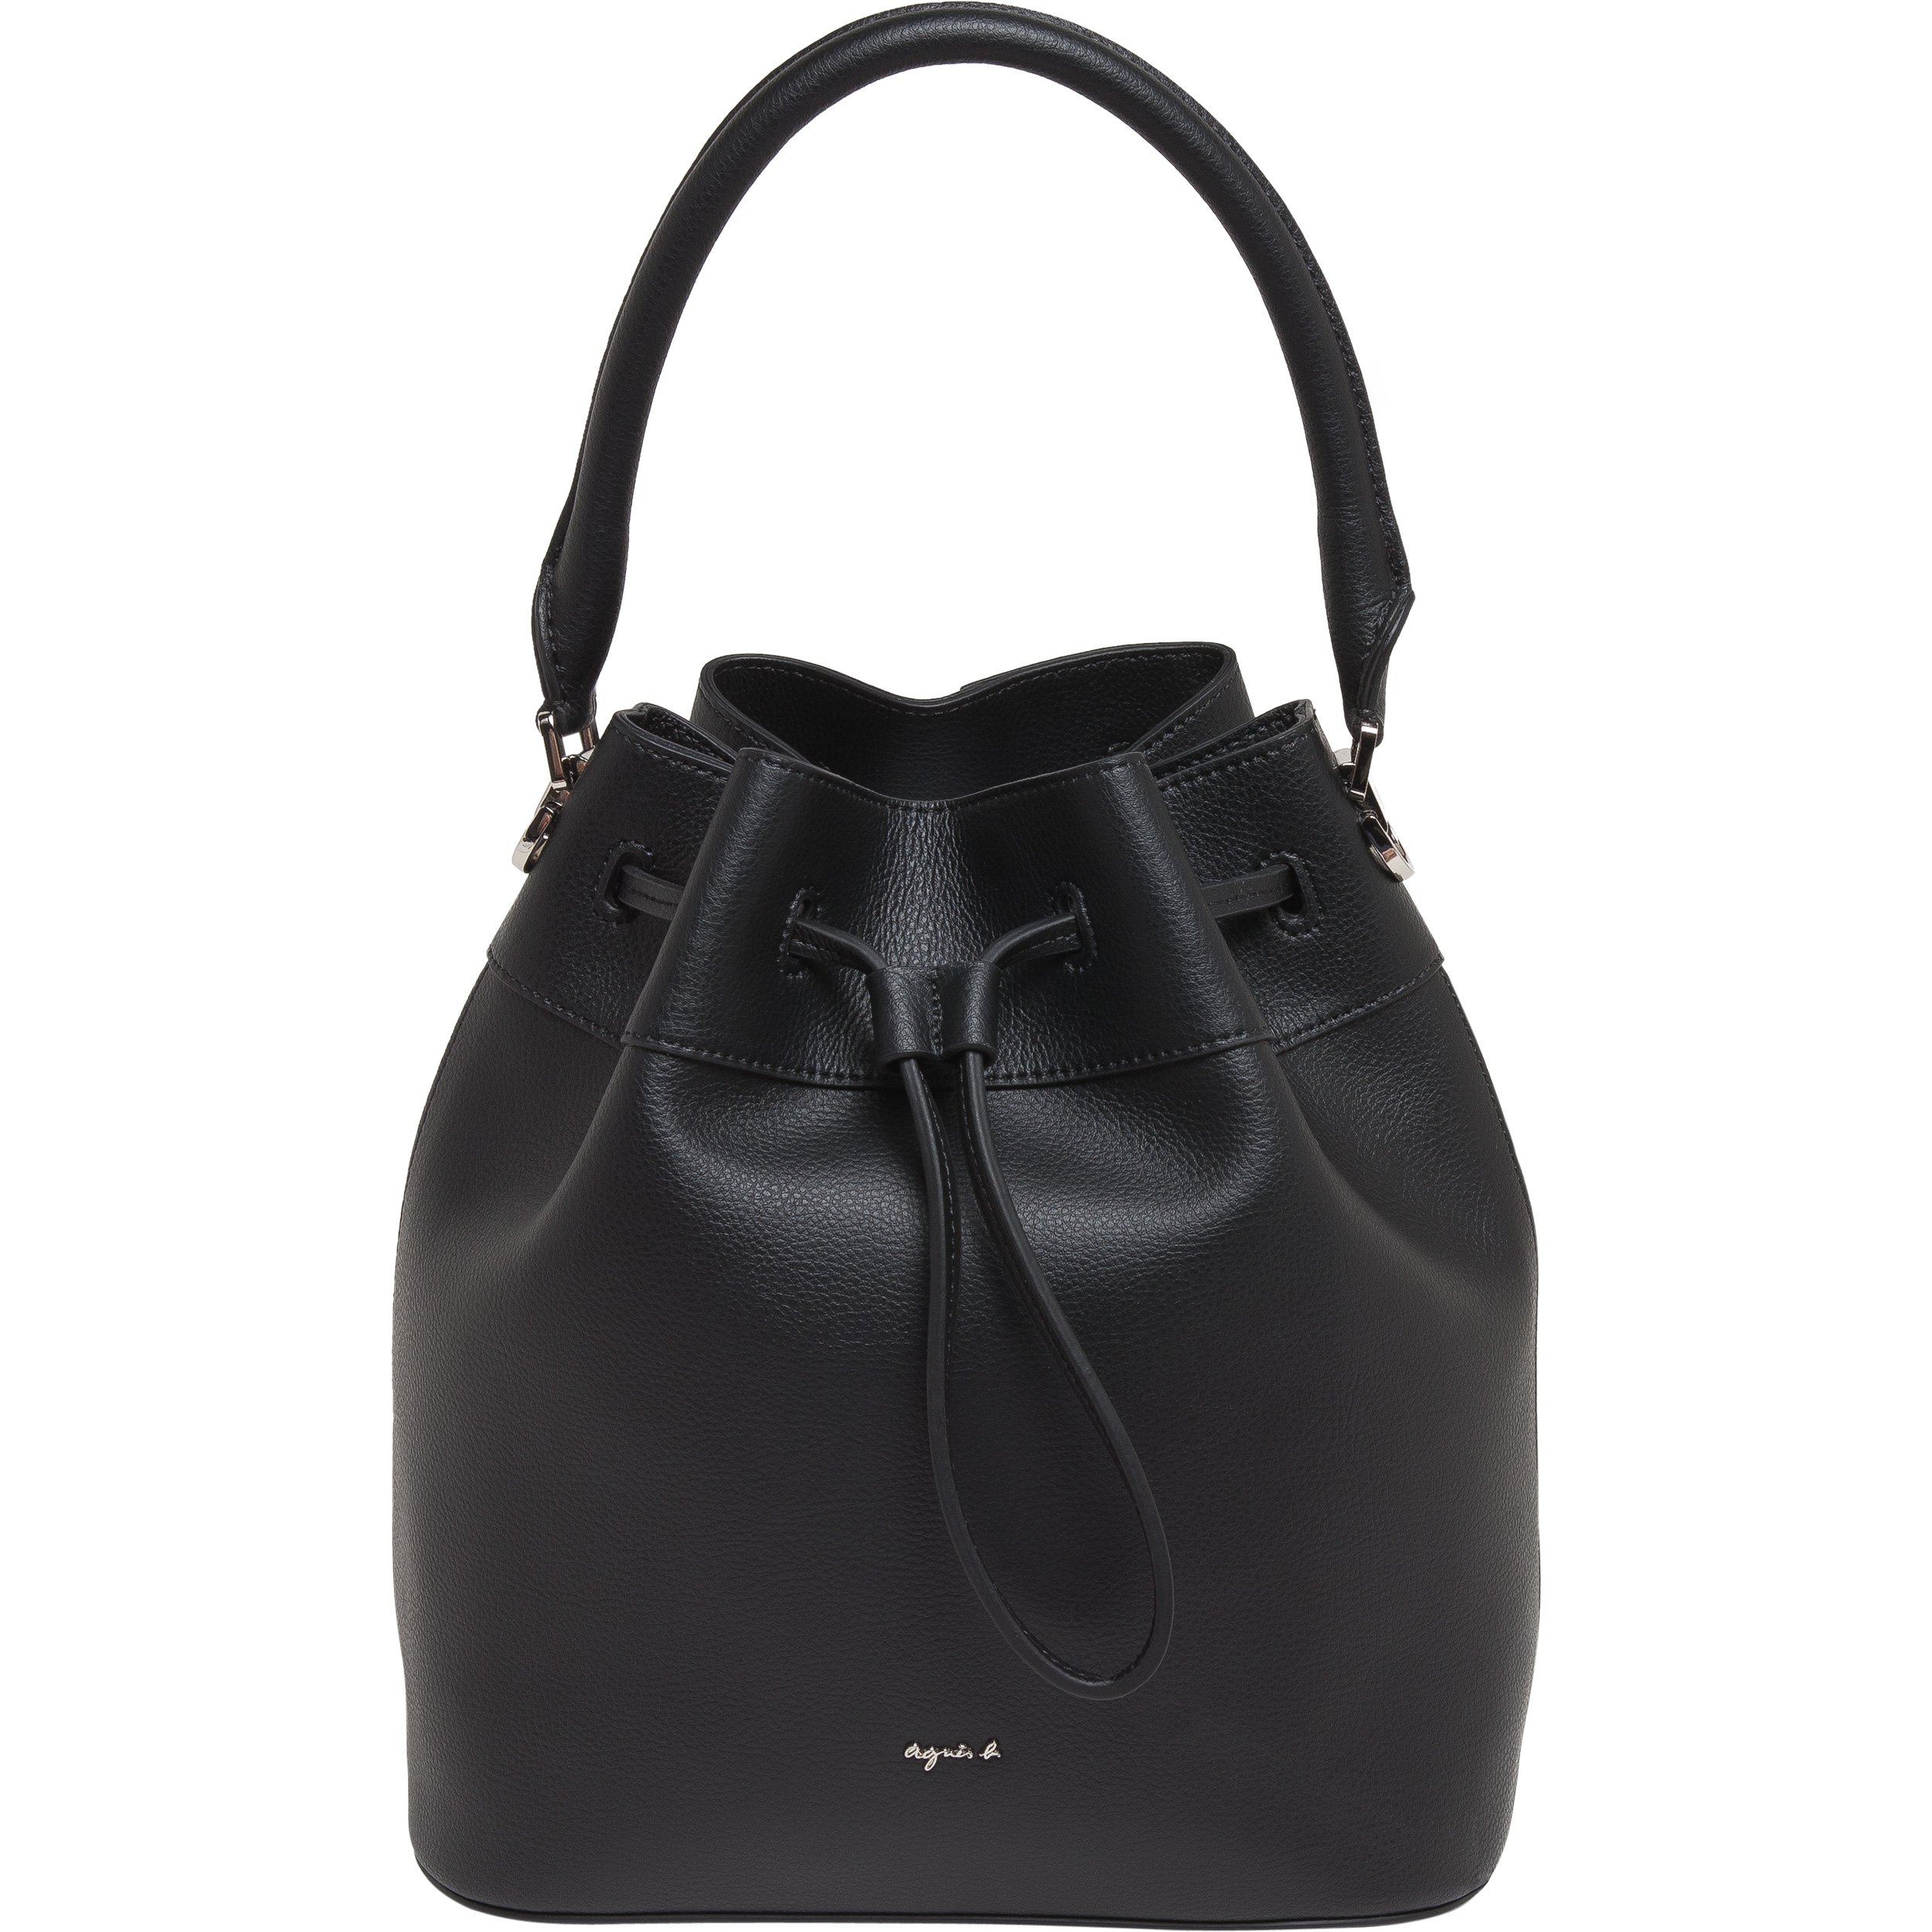 ... large alice black bucket bag $ 525 262 one size size guide add to bag